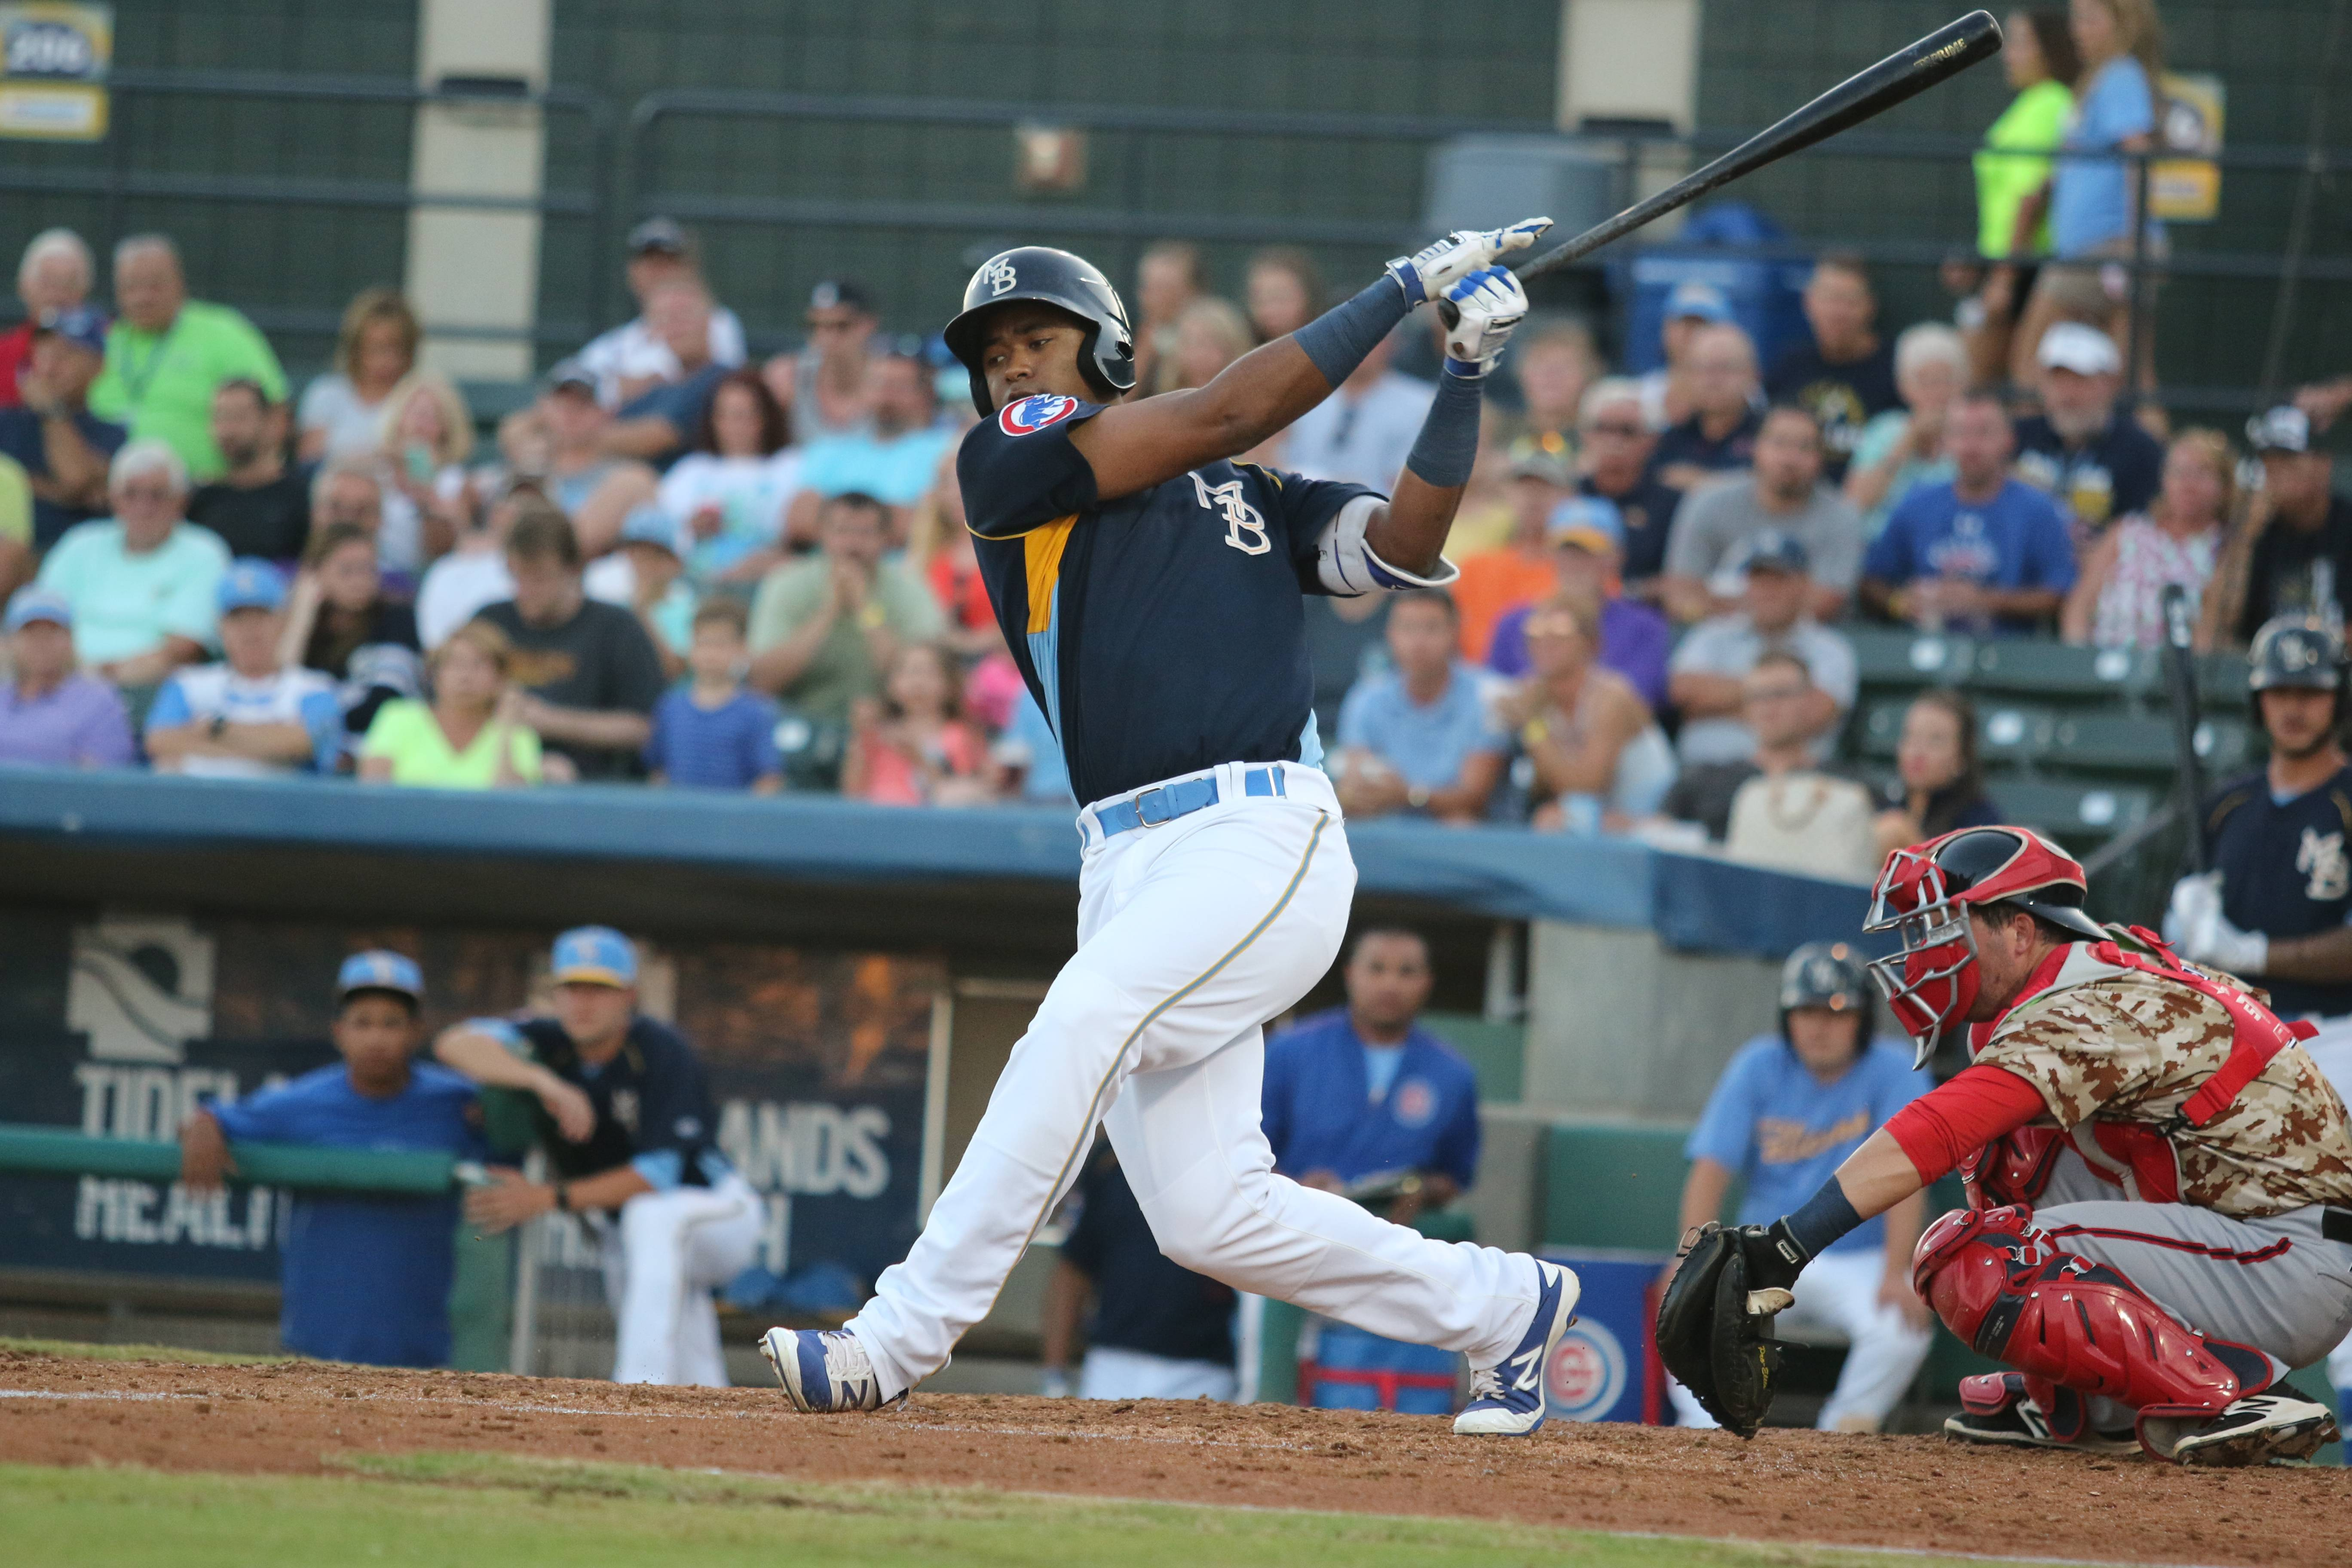 Eloy Jimenez, shown here in action at Myrtle Beach, was placed on the White Sox 40-man roster this week.